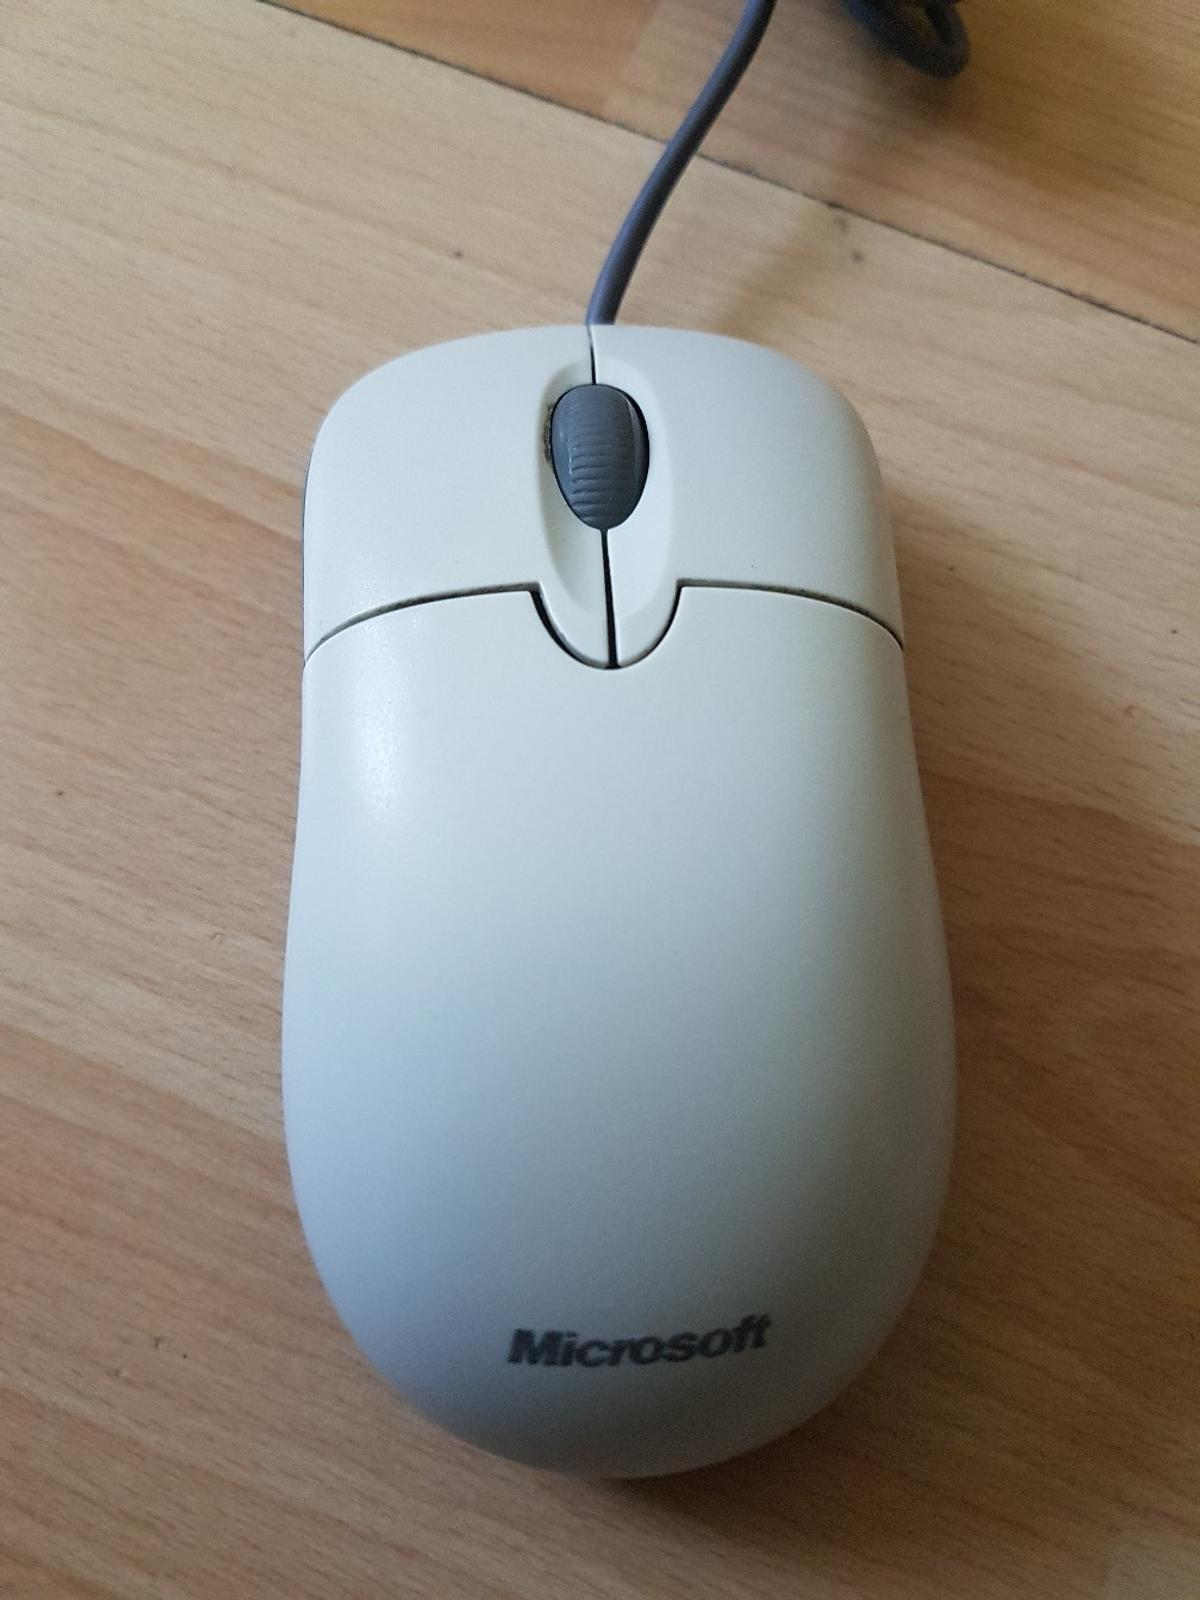 a geniuin Microsoft mouse in a mint condition